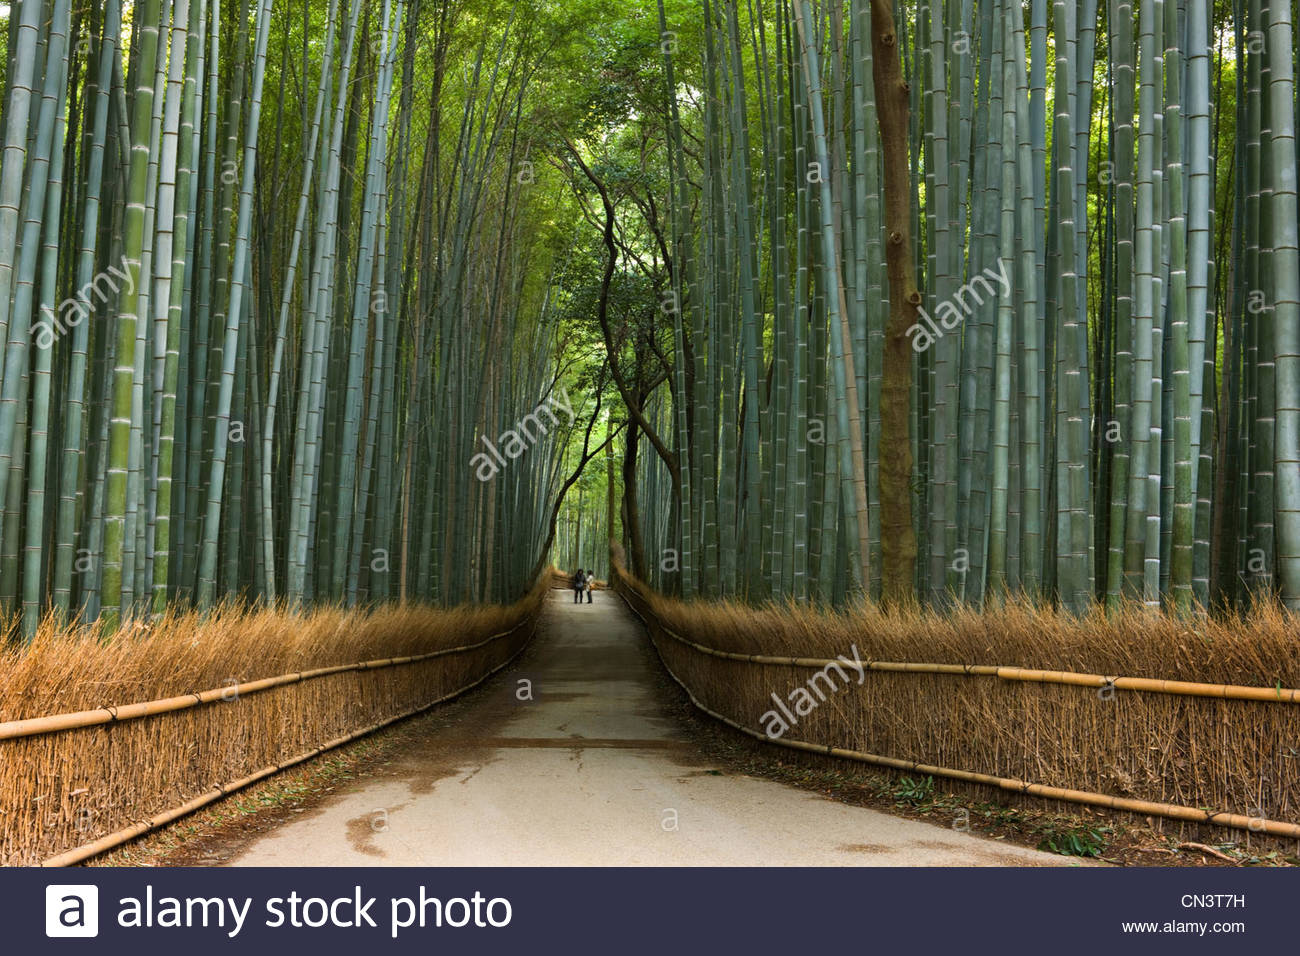 Bamboo pathway, Temple Garden District, Kyoto, Japan - Stock Image